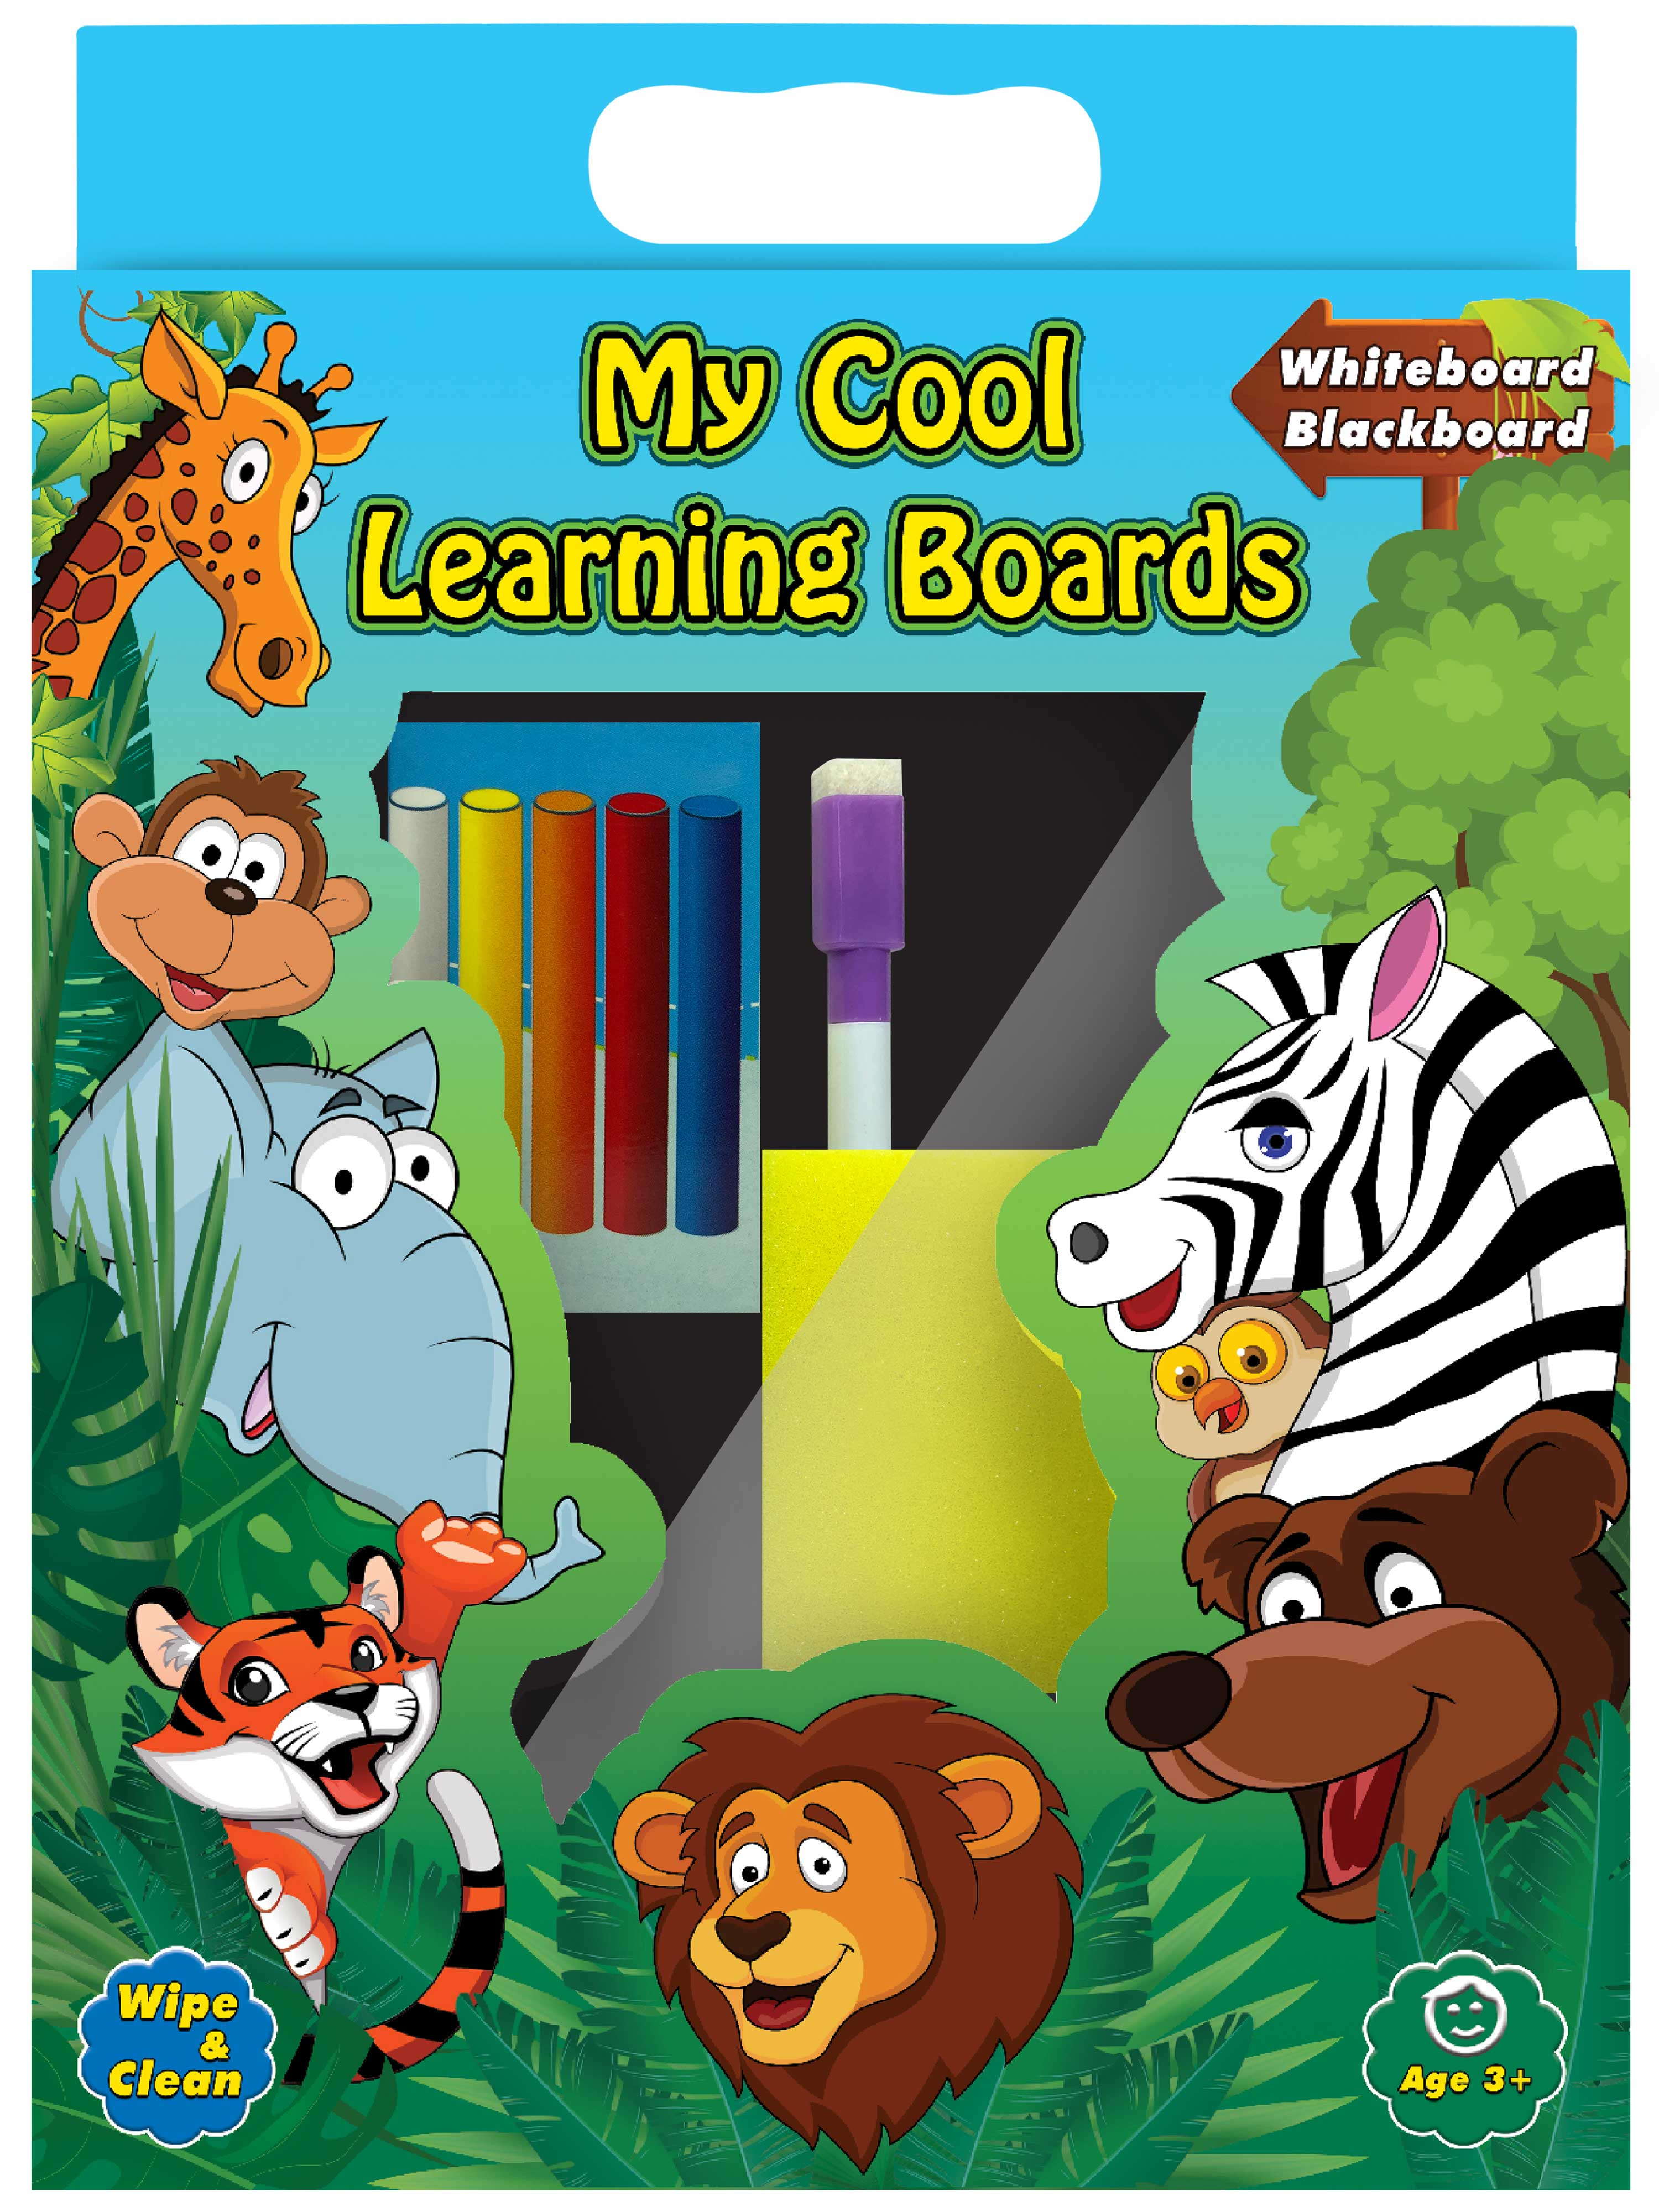 My Cool Learning Boards